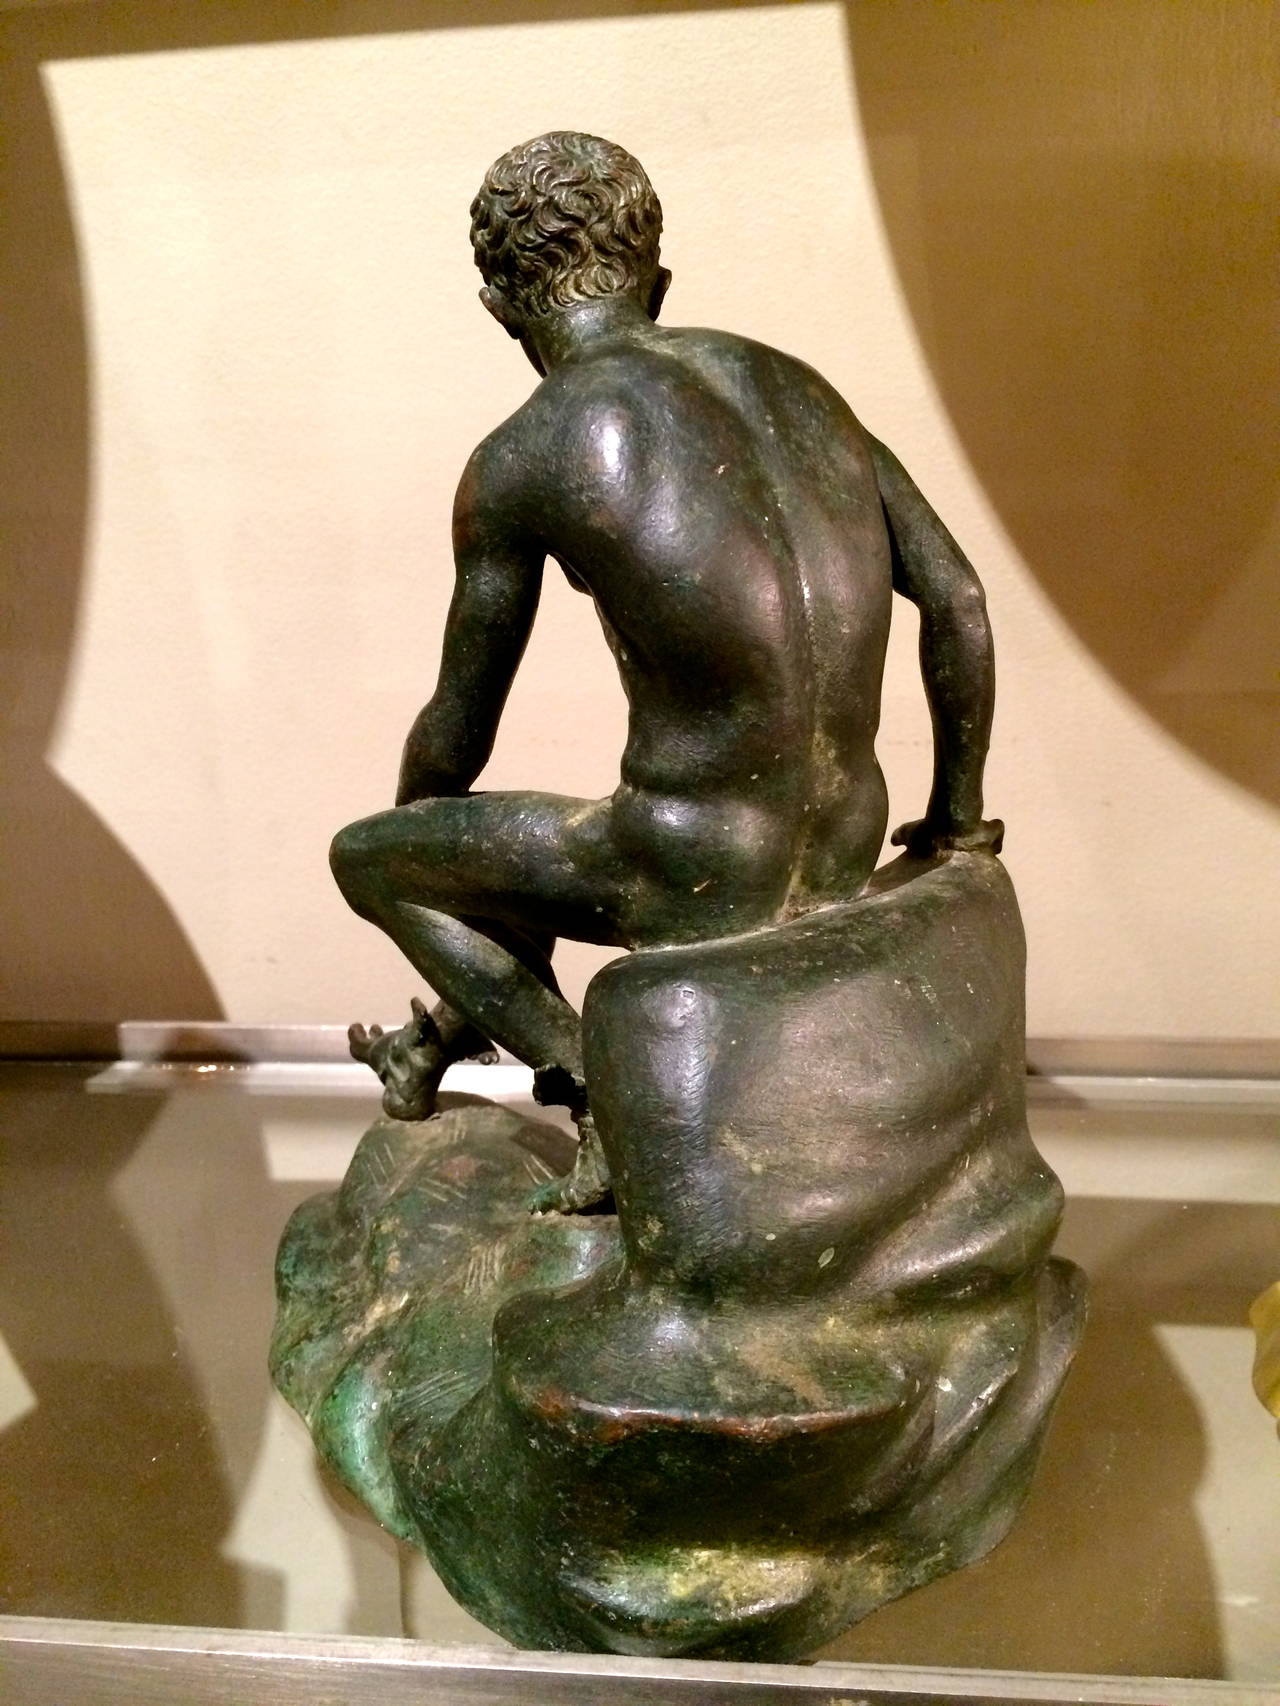 hermes statue reproduction - HD1280×1706